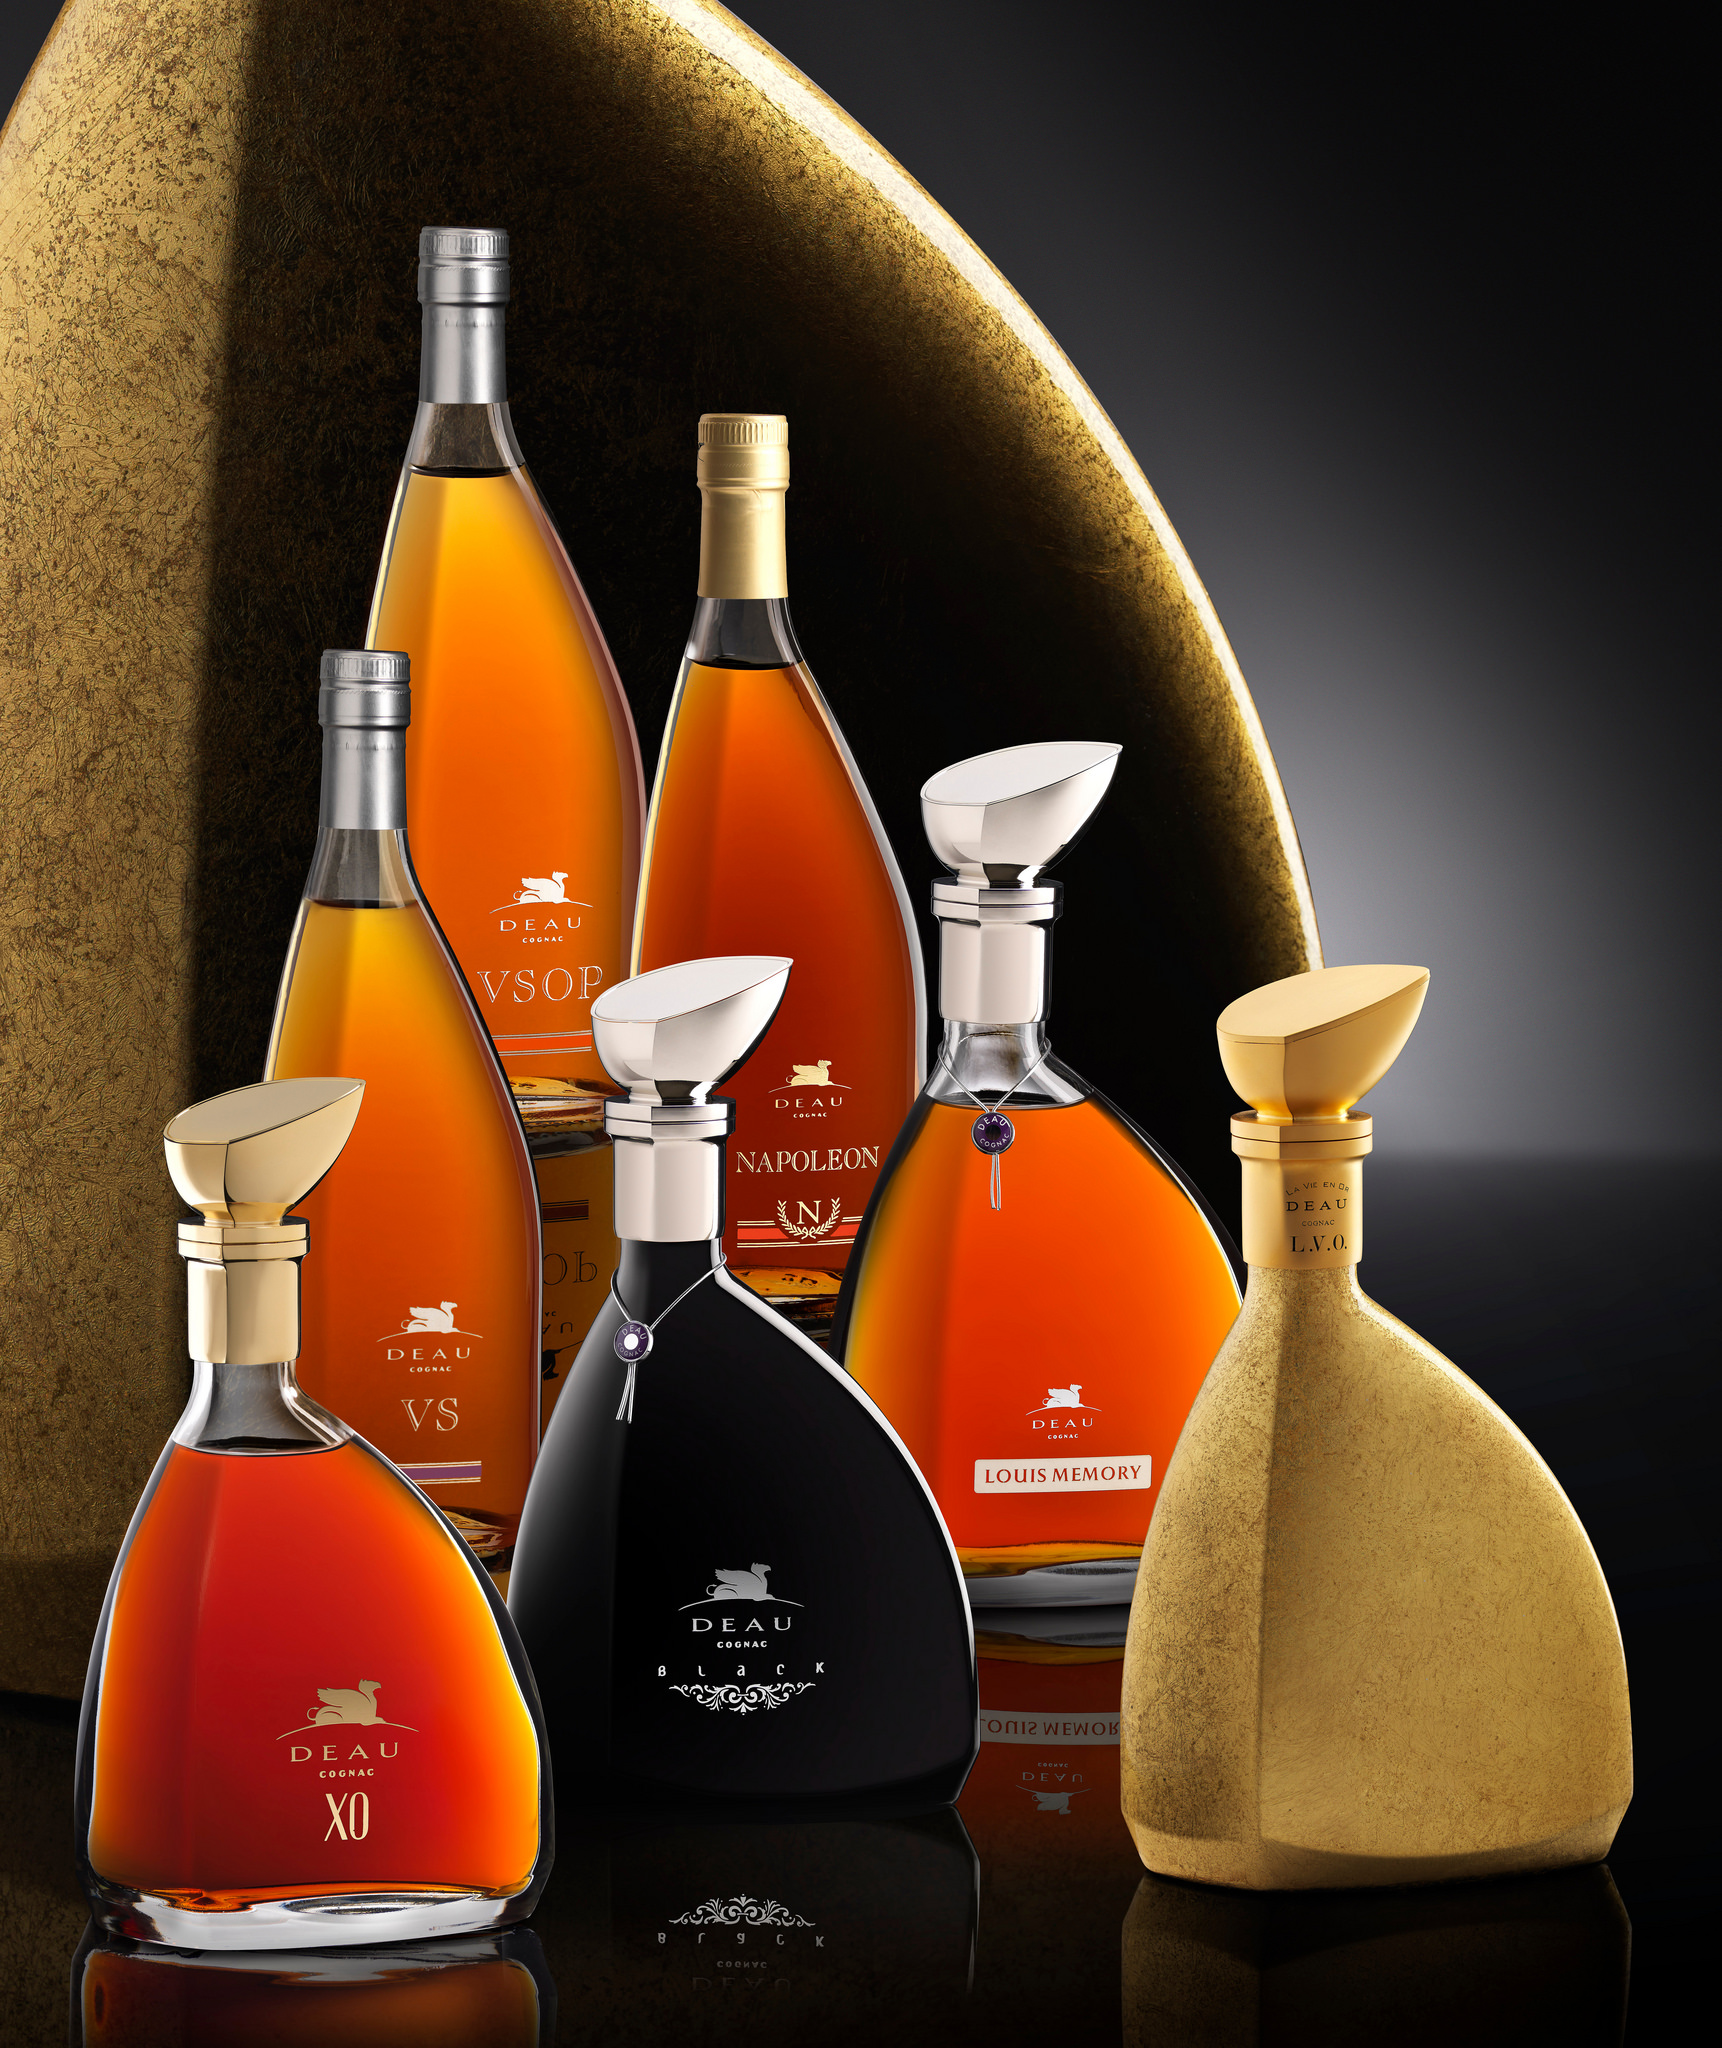 The Story of DEAU Cognac & Roland Legaret's Return